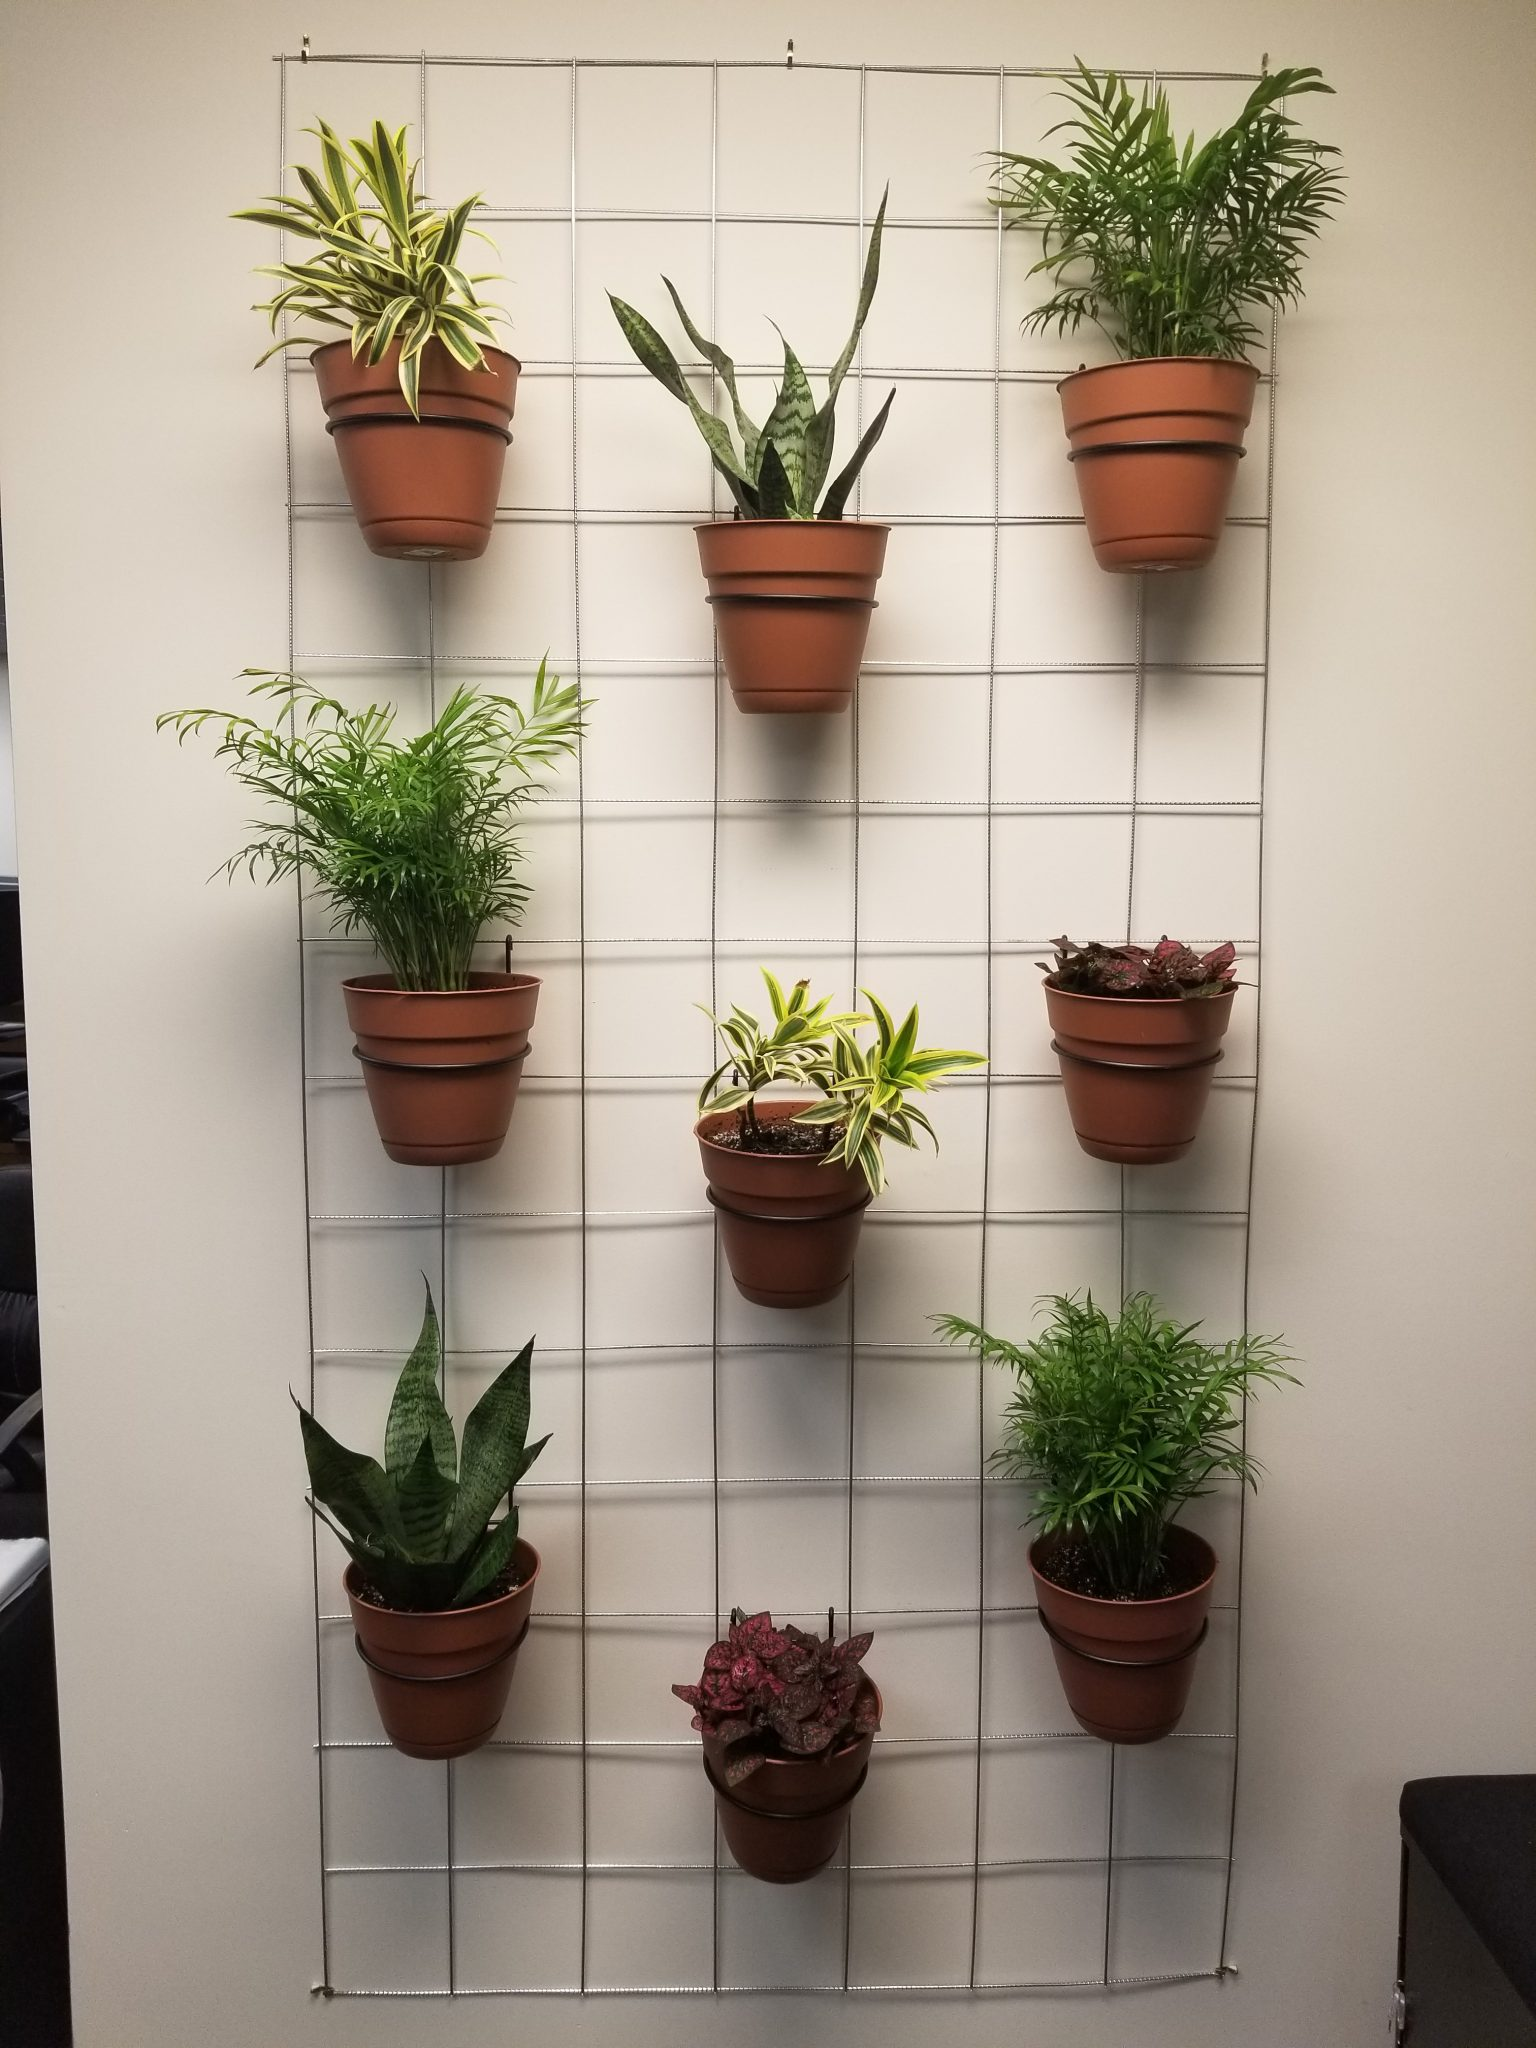 "I've been on a journey these last few months to green our office – literally-- by building and testing a version of a living plant wall in the SBC office. Back in 2018, our team realized that all of the nature in our office was hung up in 2D picture frames on the wall and, as sustainability professionals, we wanted more of a connection to nature in our daily lives. Naturally, I accepted the challenge to ""green up"" our office without breaking the bank on expensive (though beautiful) living plant walls. Here's how to add some healthy greenery to your office on a budget:"